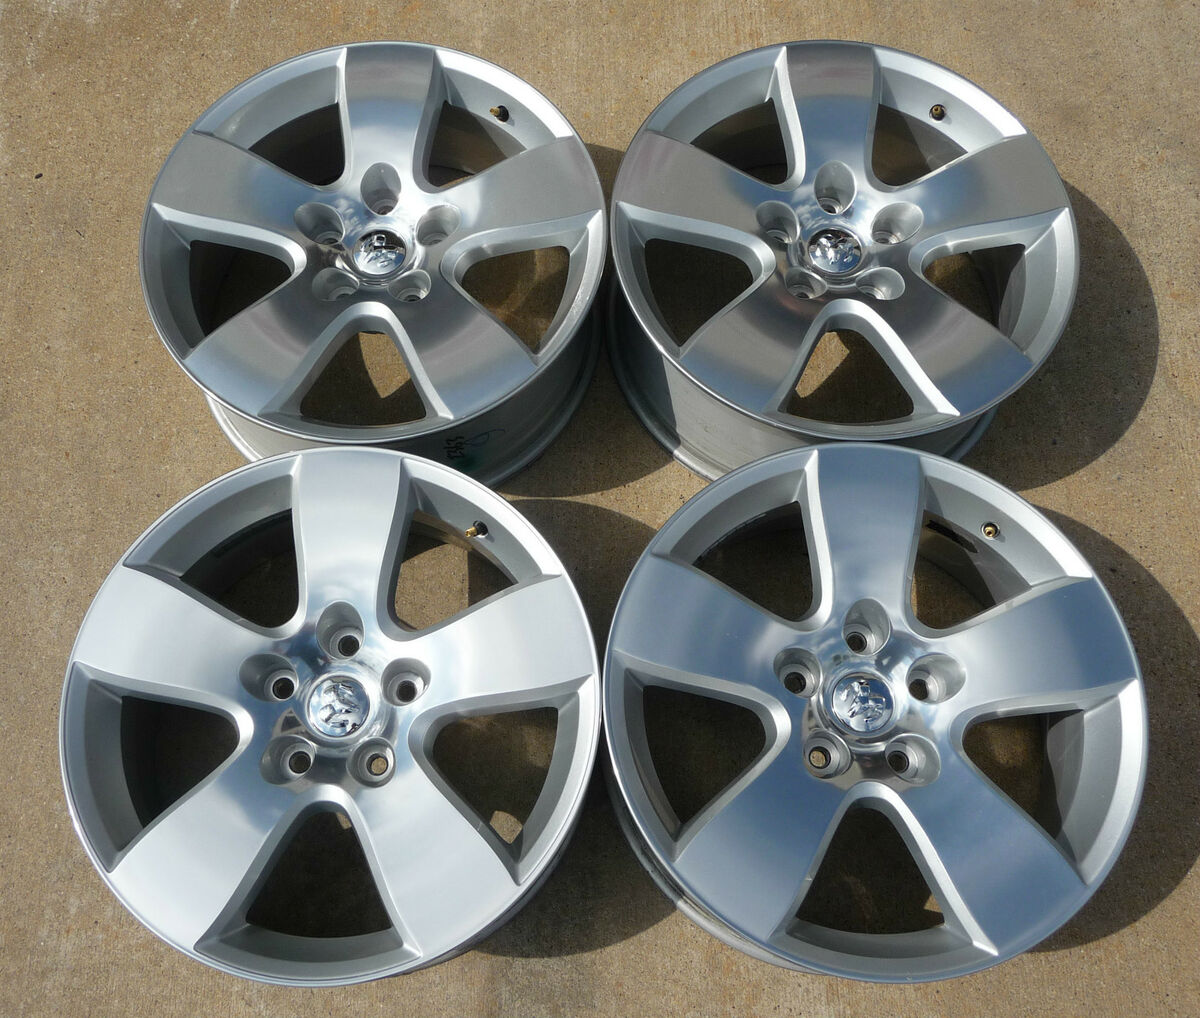 2013 Dodge RAM 1500 20 Factory Alloy Wheels with Caps 2363